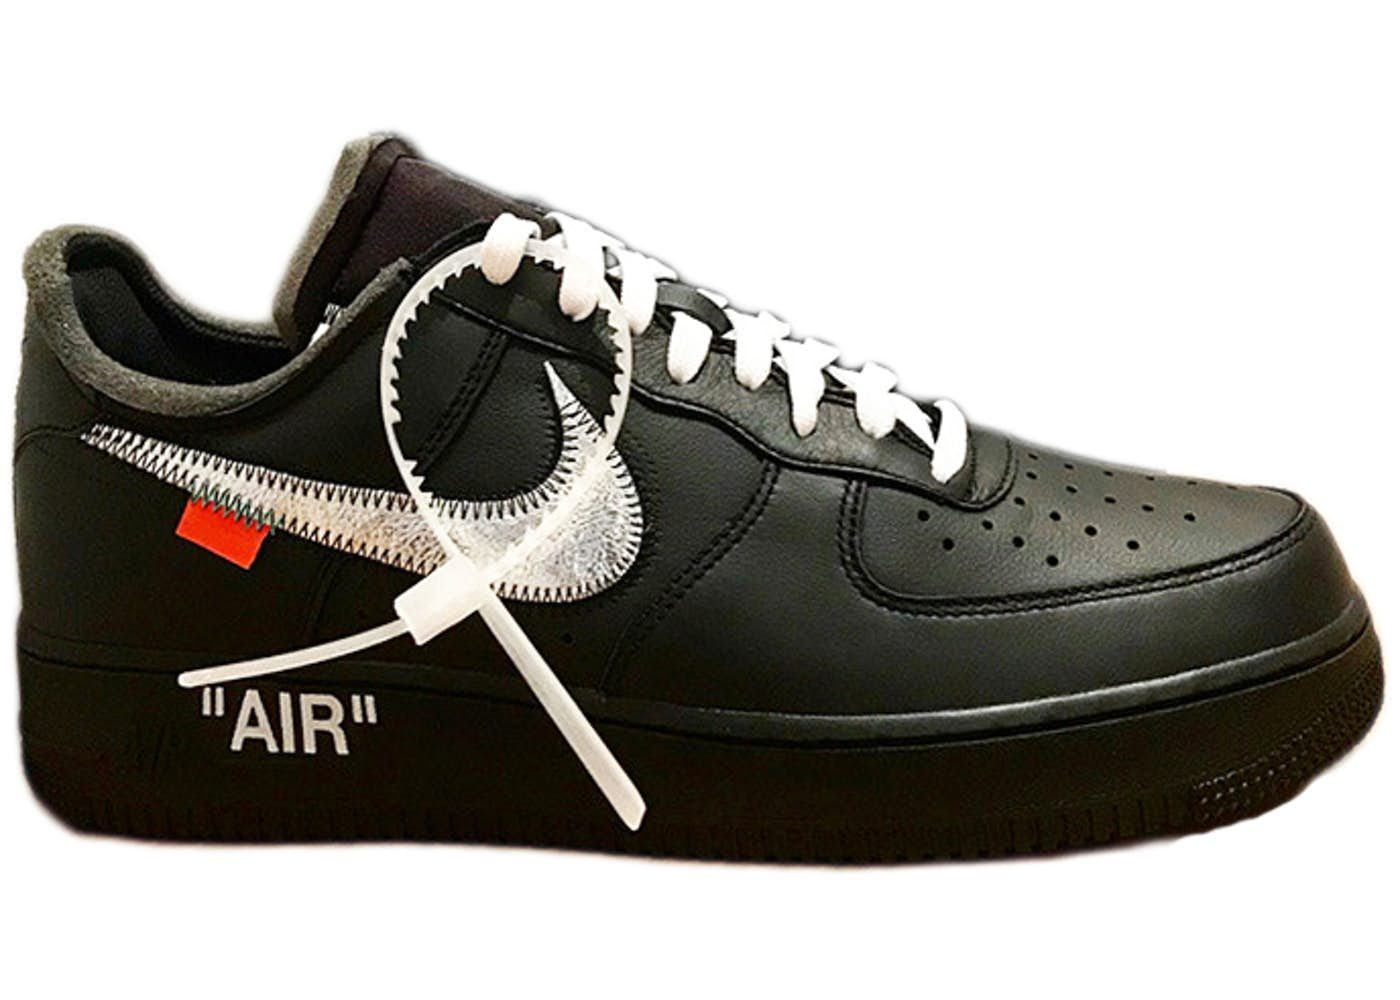 Nike Force 1 '07 Virgil x MoMA (No Socks) | Sneakers fashion